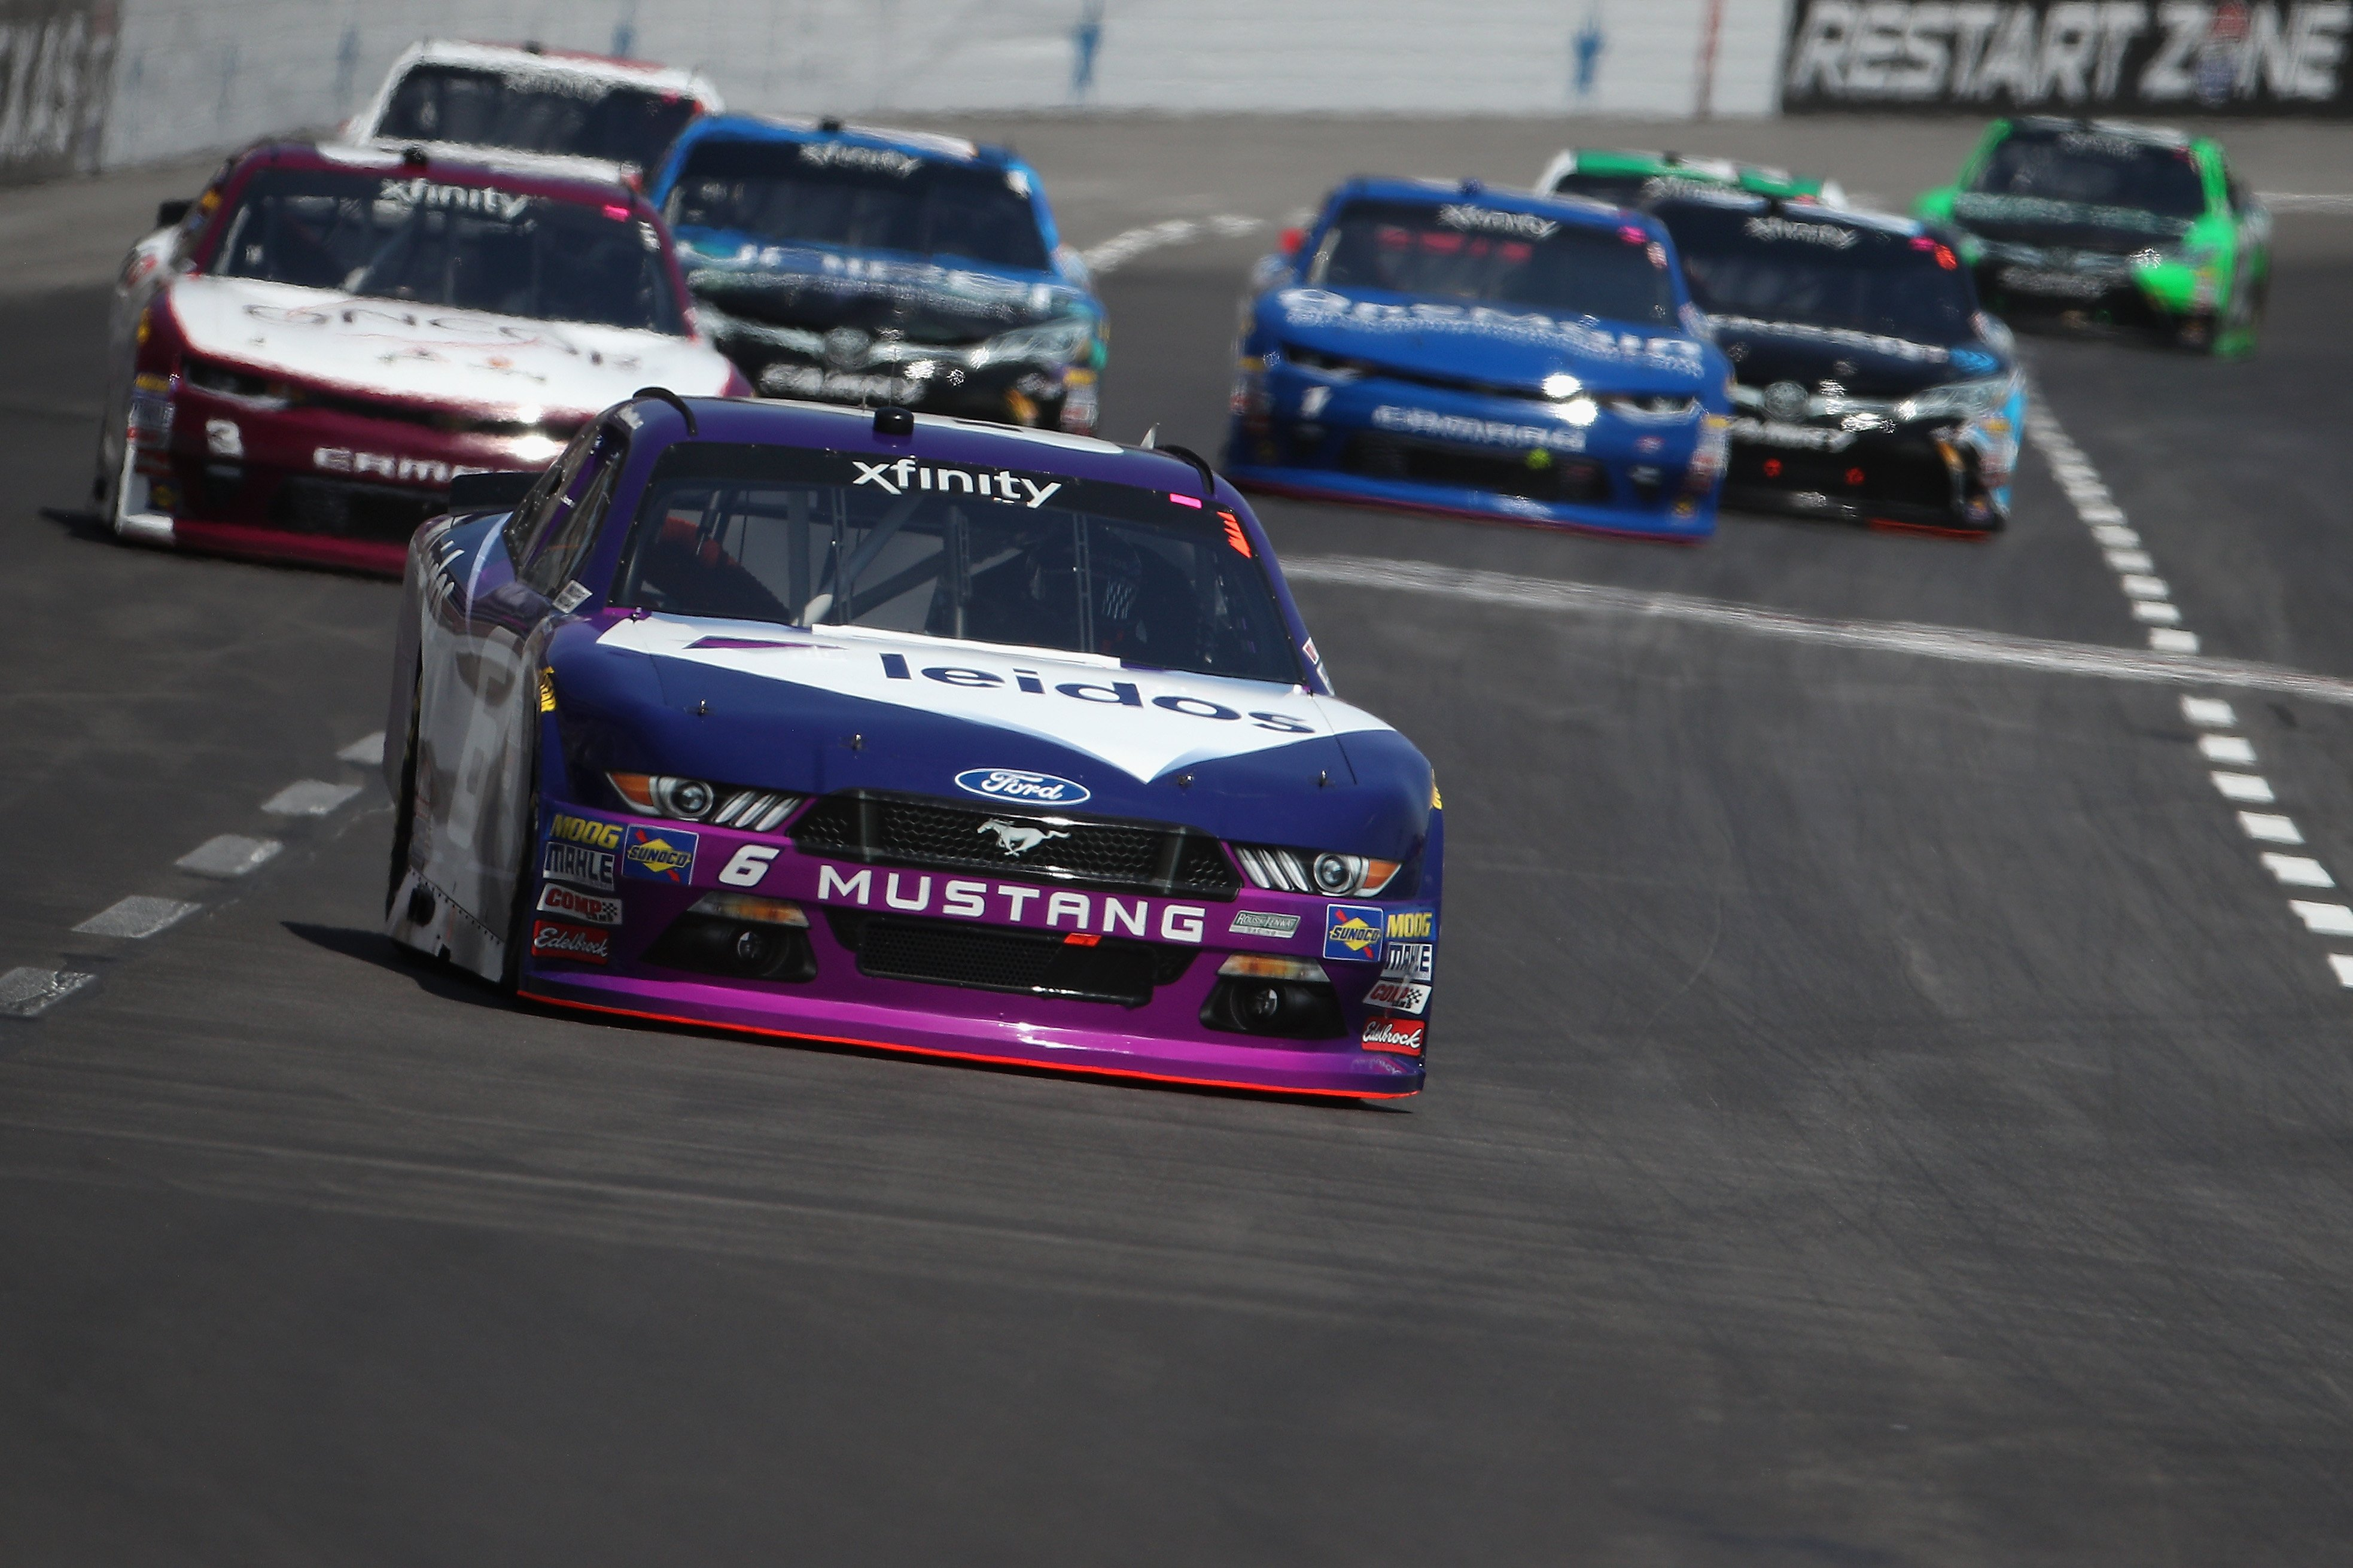 NASCAR Xfinity Series Team Ceasing Full-Time Entries - Darrell Wallace Jr Currently 4th in Xfinity Points